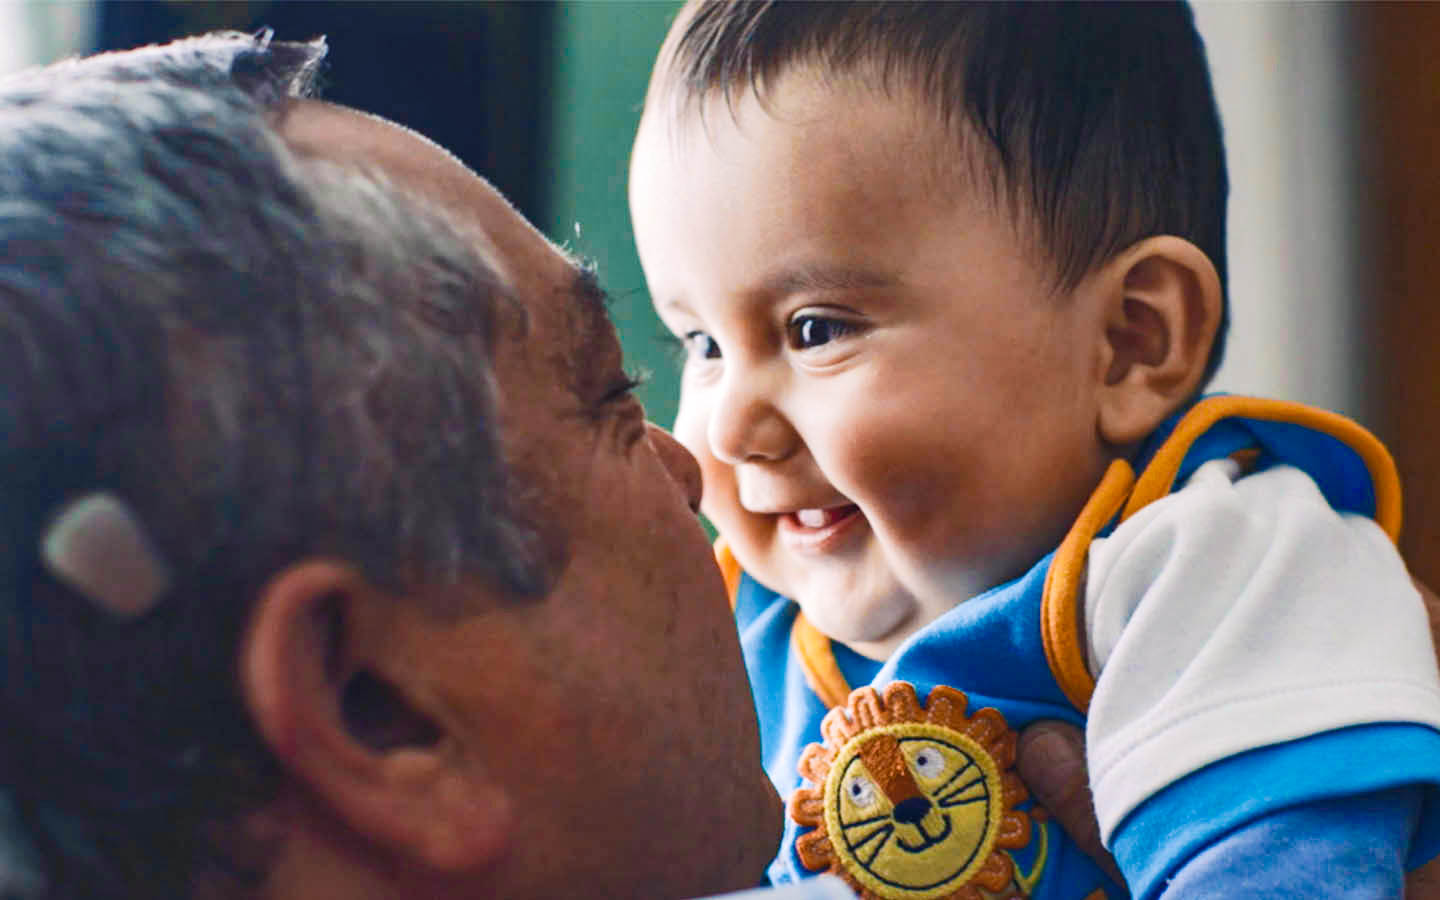 A man holds up his smiling grandson